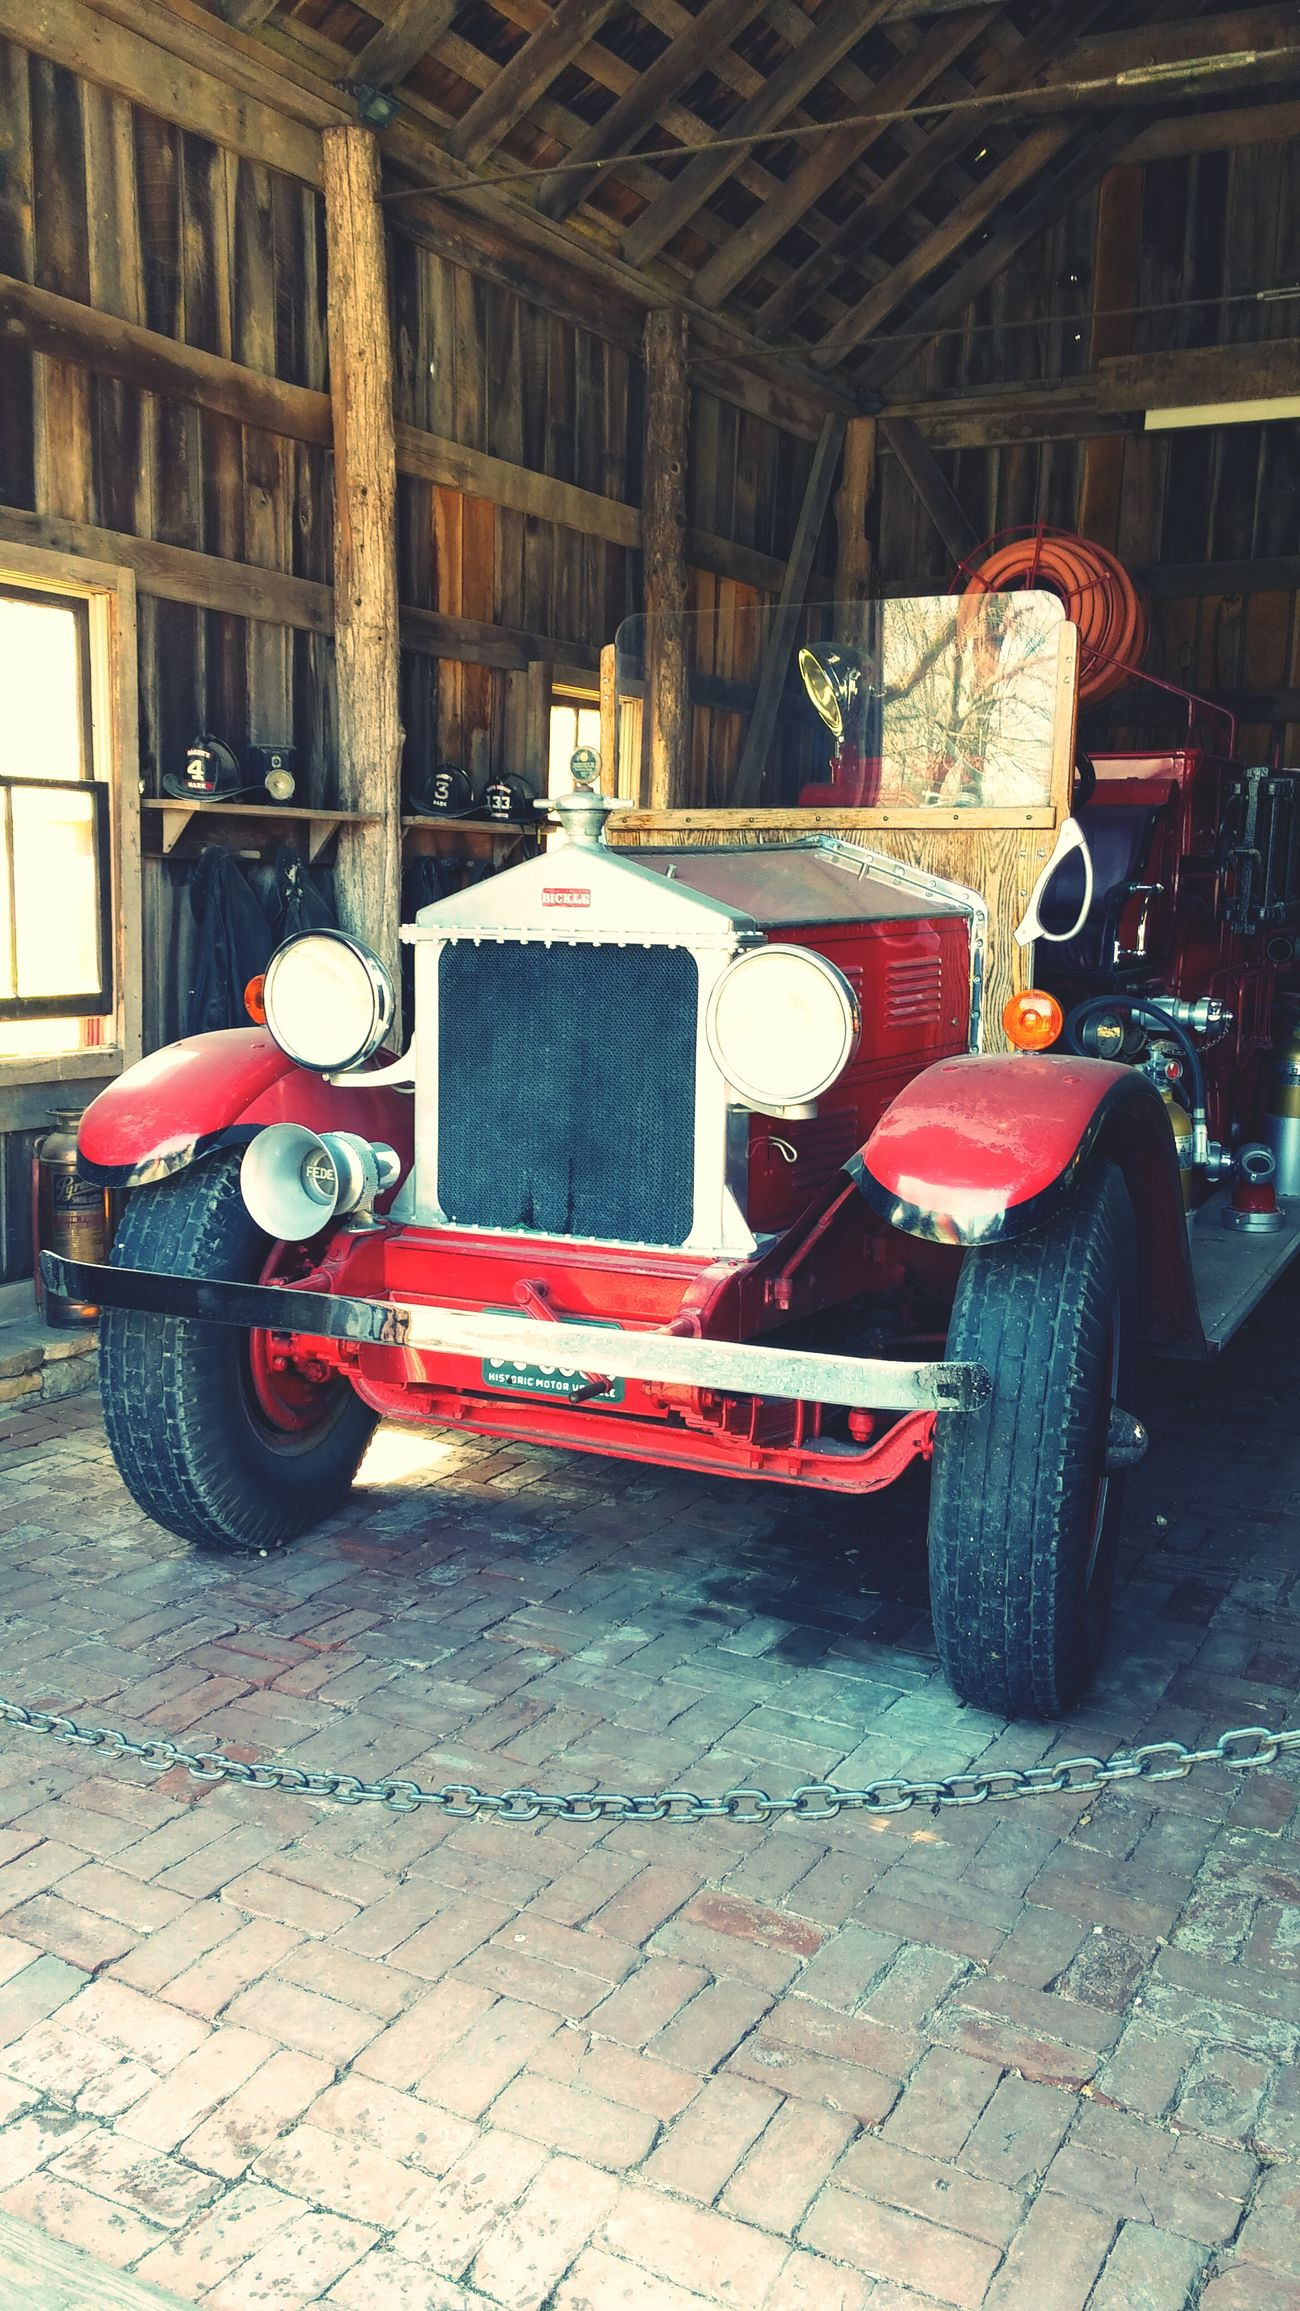 Distillery Tour Vintage Firetruck Makers Mark Kentucky